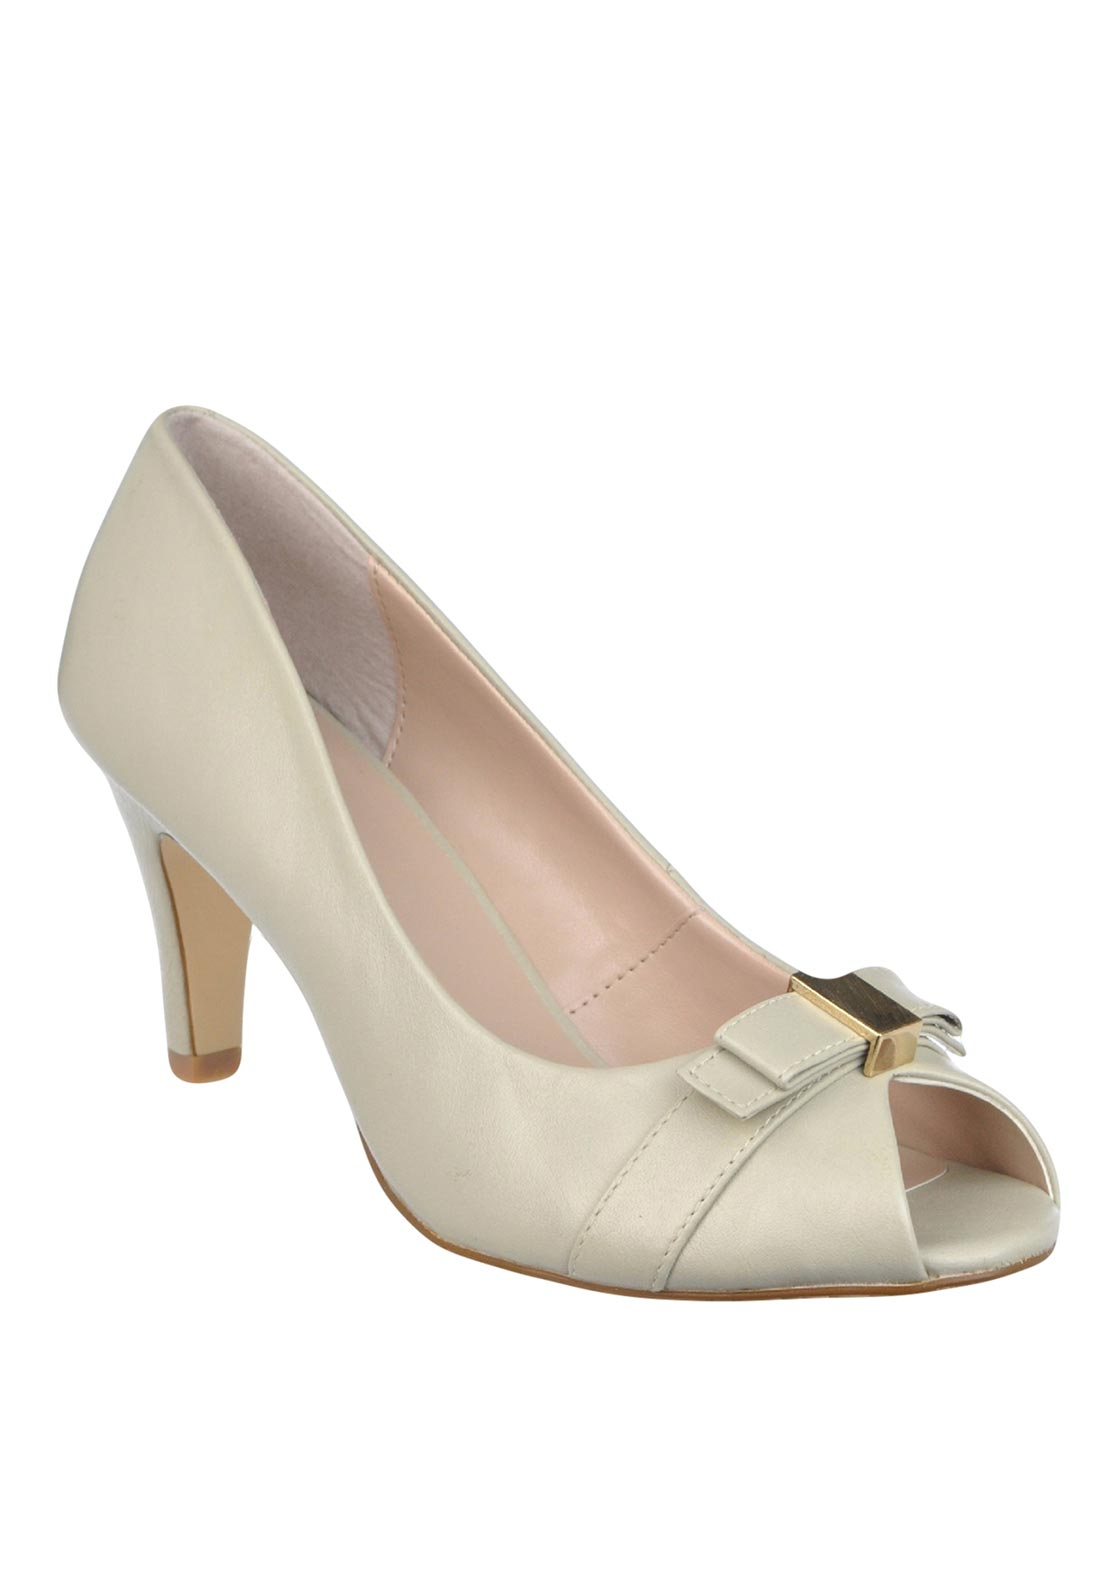 Lotus Leather Peep Toe Bow Heeled Shoes, Beige